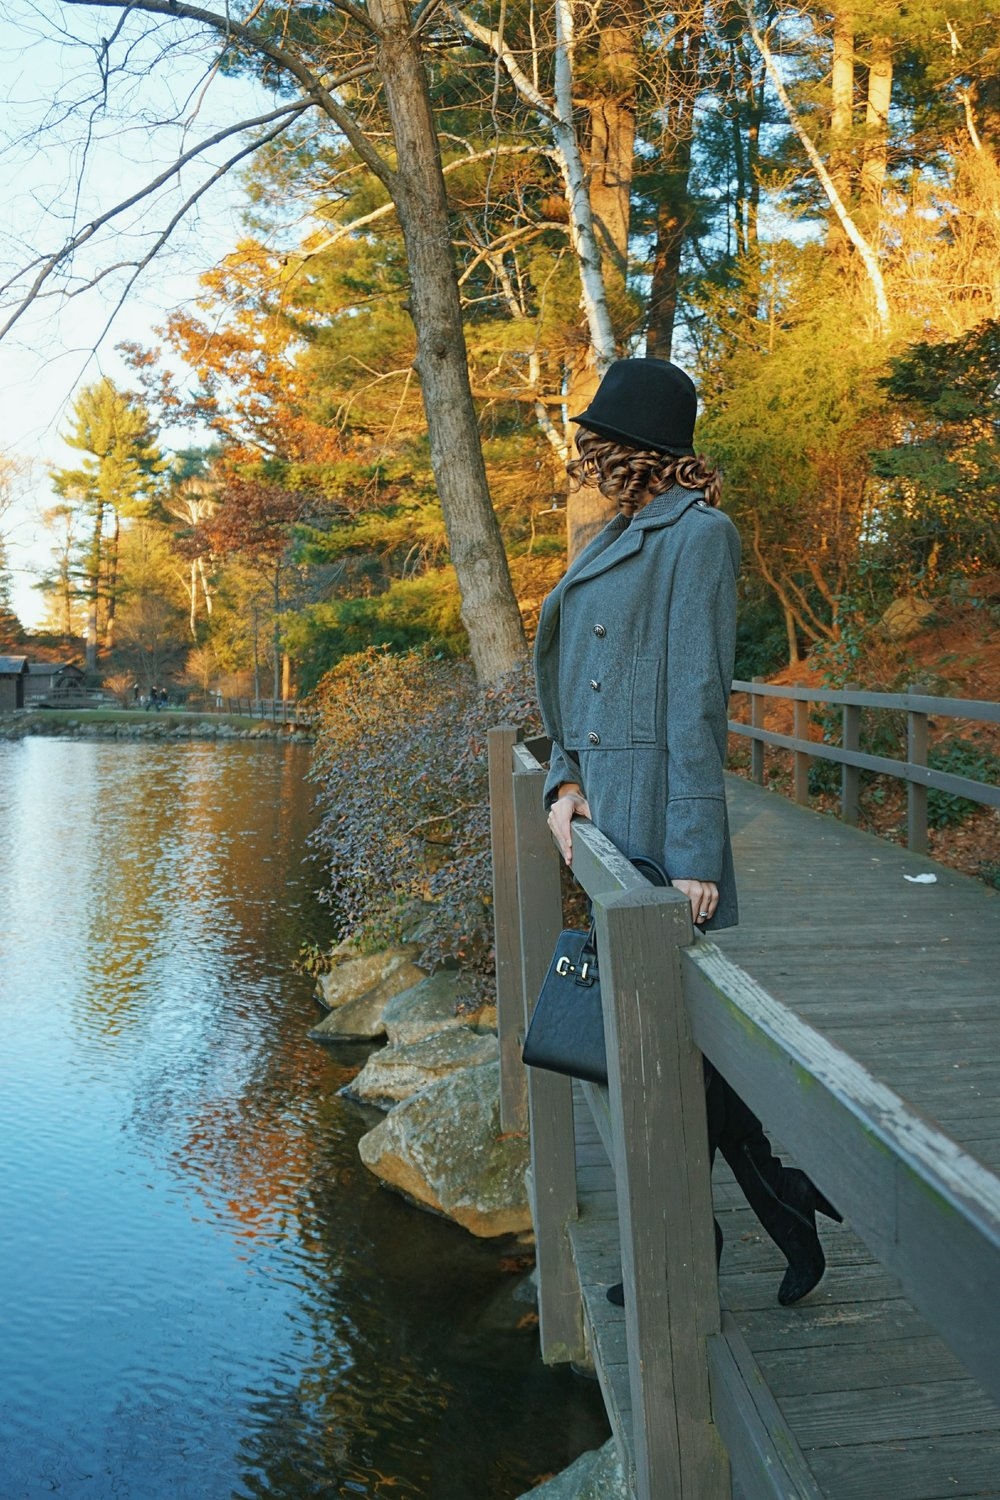 A fashion blogger looking at the pond, wearing black jeans, gray coat, black hat, and thigh high boots.